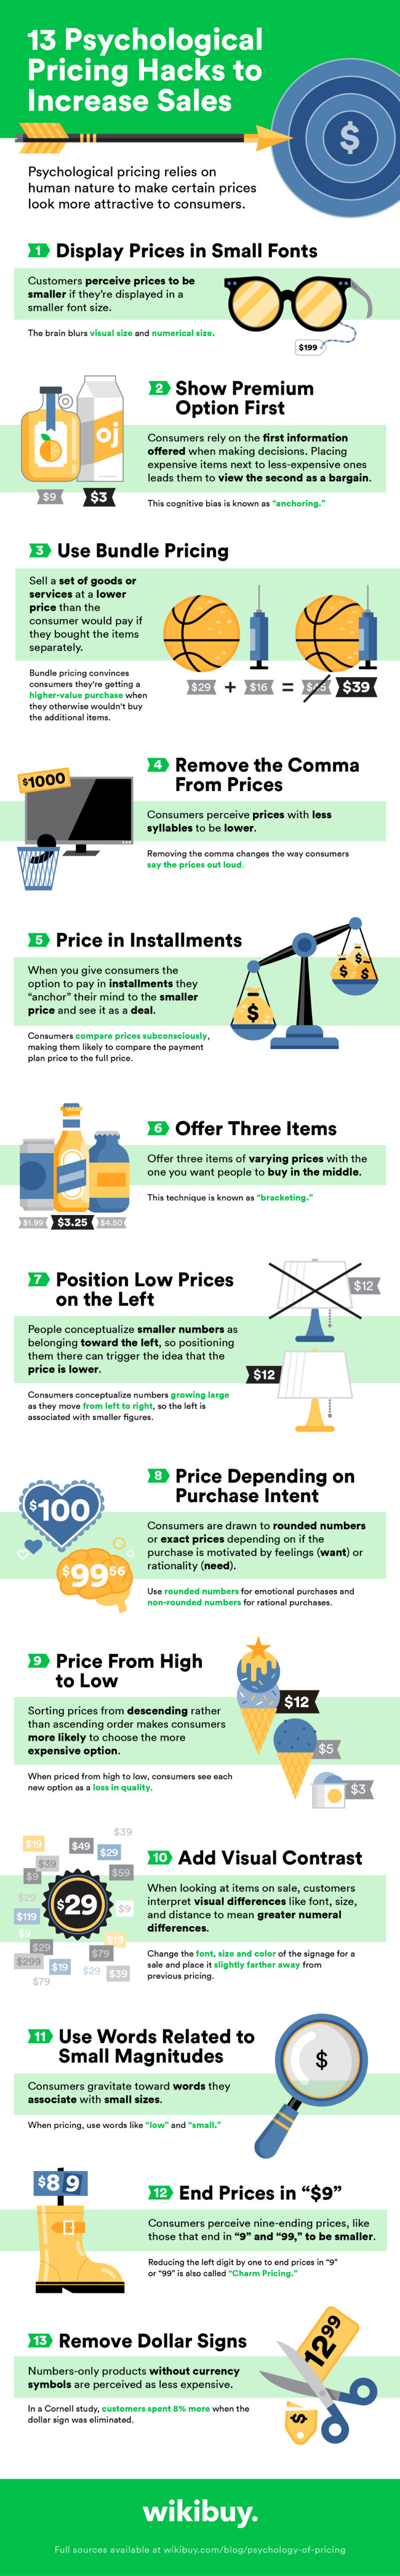 13 Psychological Pricing Hacks to Drive Sales